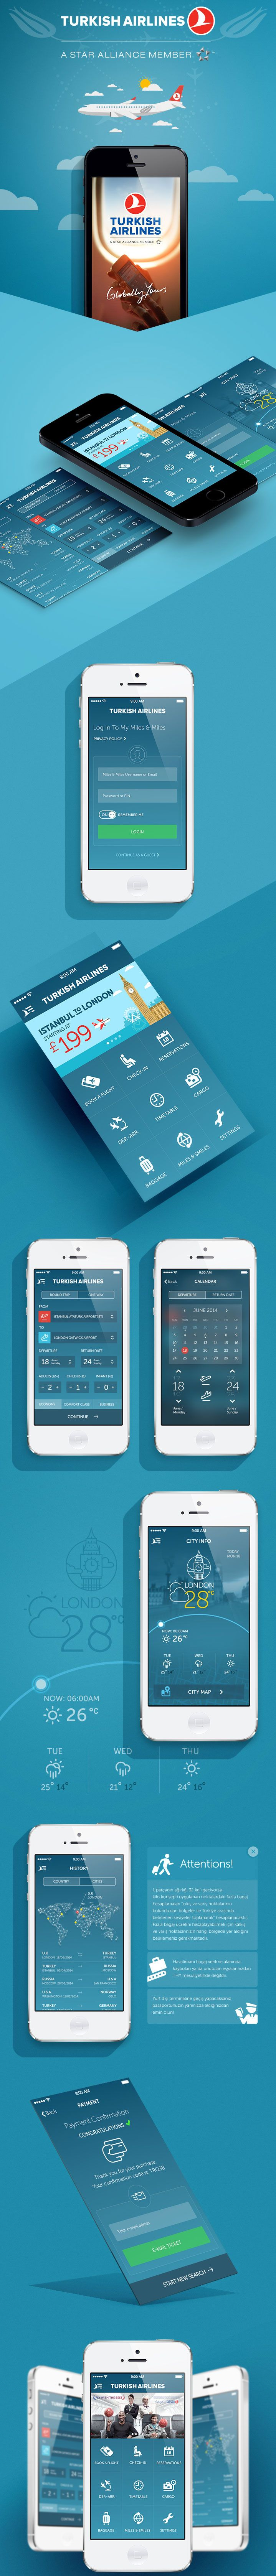 Turkish Airlines App Redesign